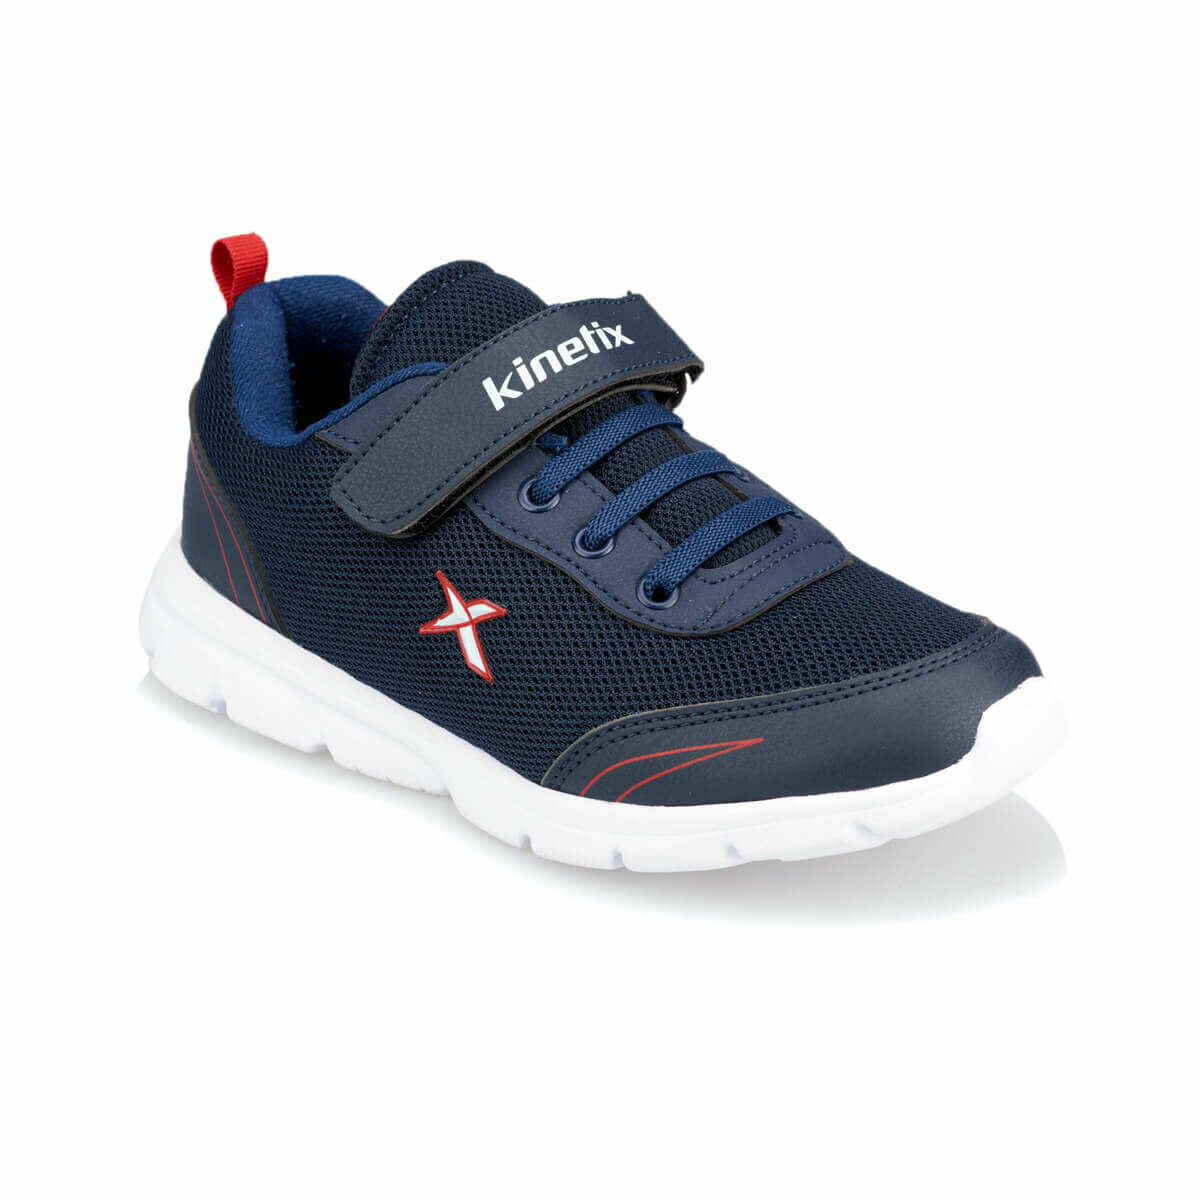 FLO YANNI Navy Blue Male Child Hiking Shoes KINETIX